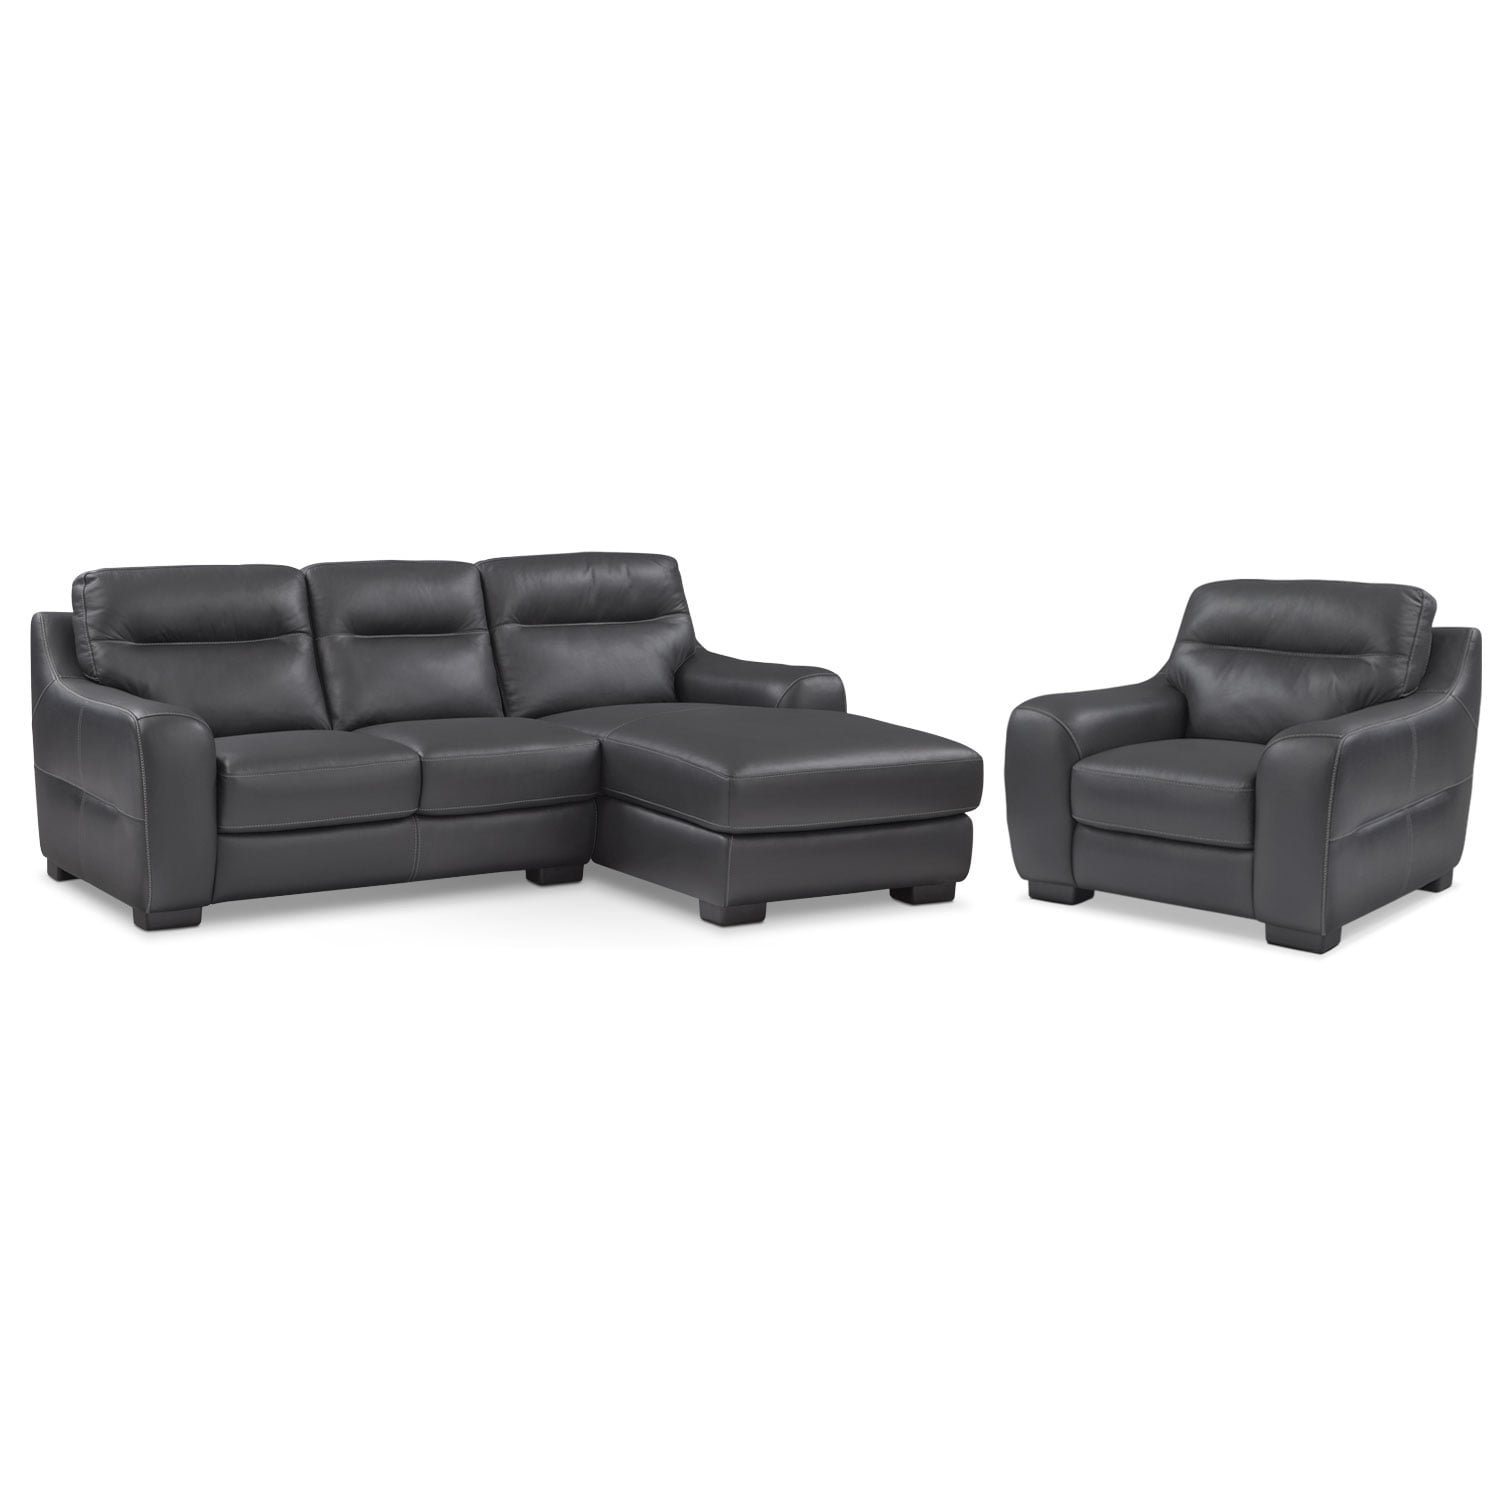 Living Room Furniture - Rocco Black 2 Pc. Right-Facing Chaise Sectional and Chair